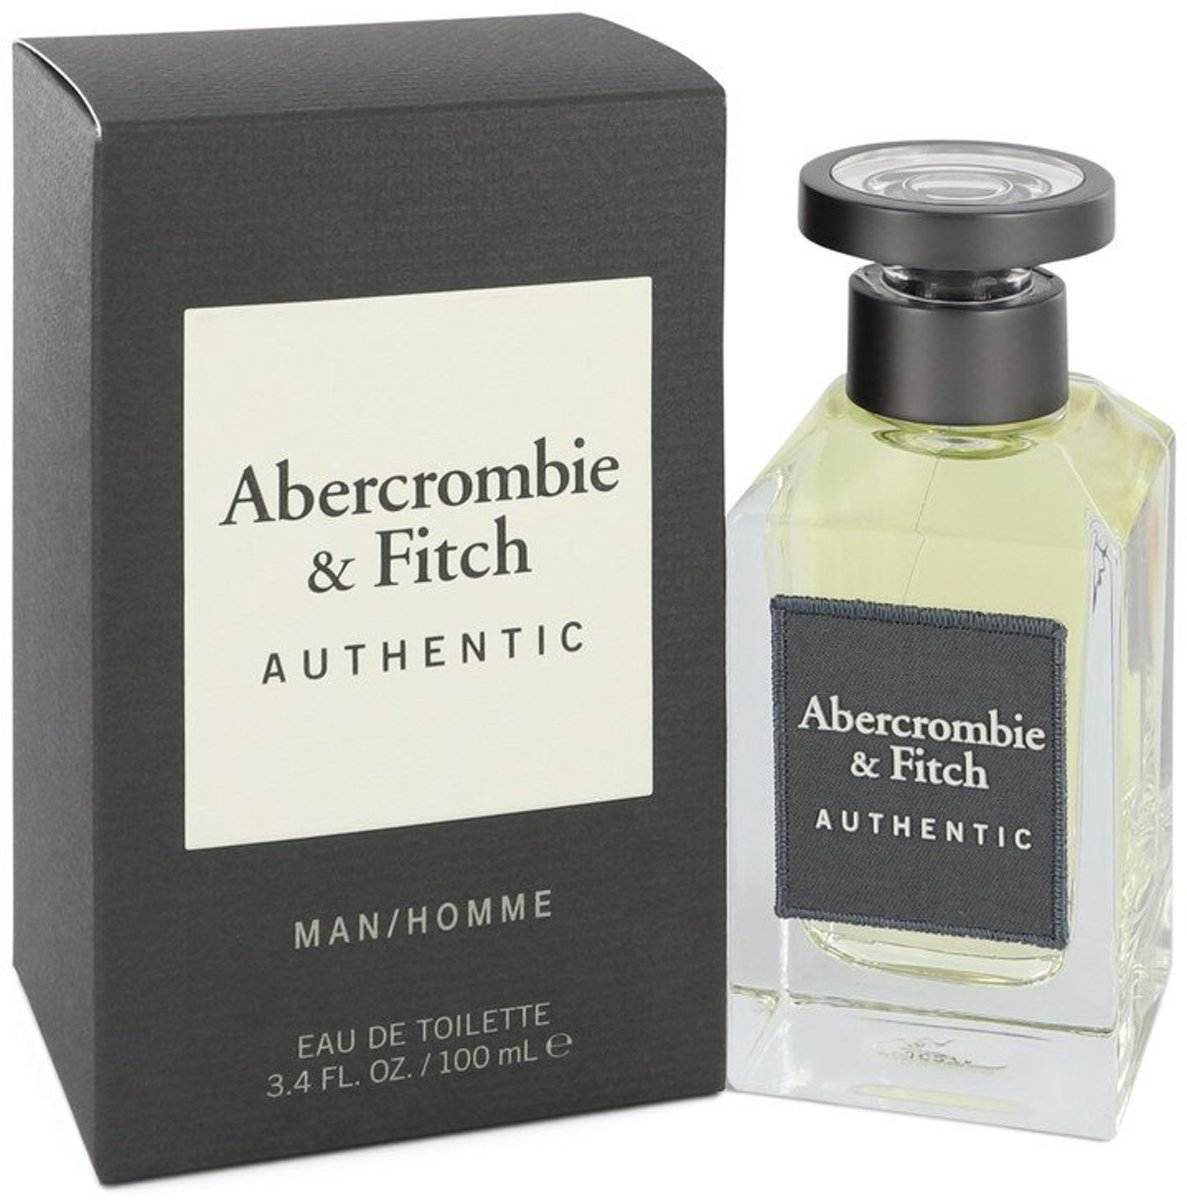 Abercrombie & Fitch Abercrombie & Fitch Authentic Man/Homme eau de toilette spray 100 ml